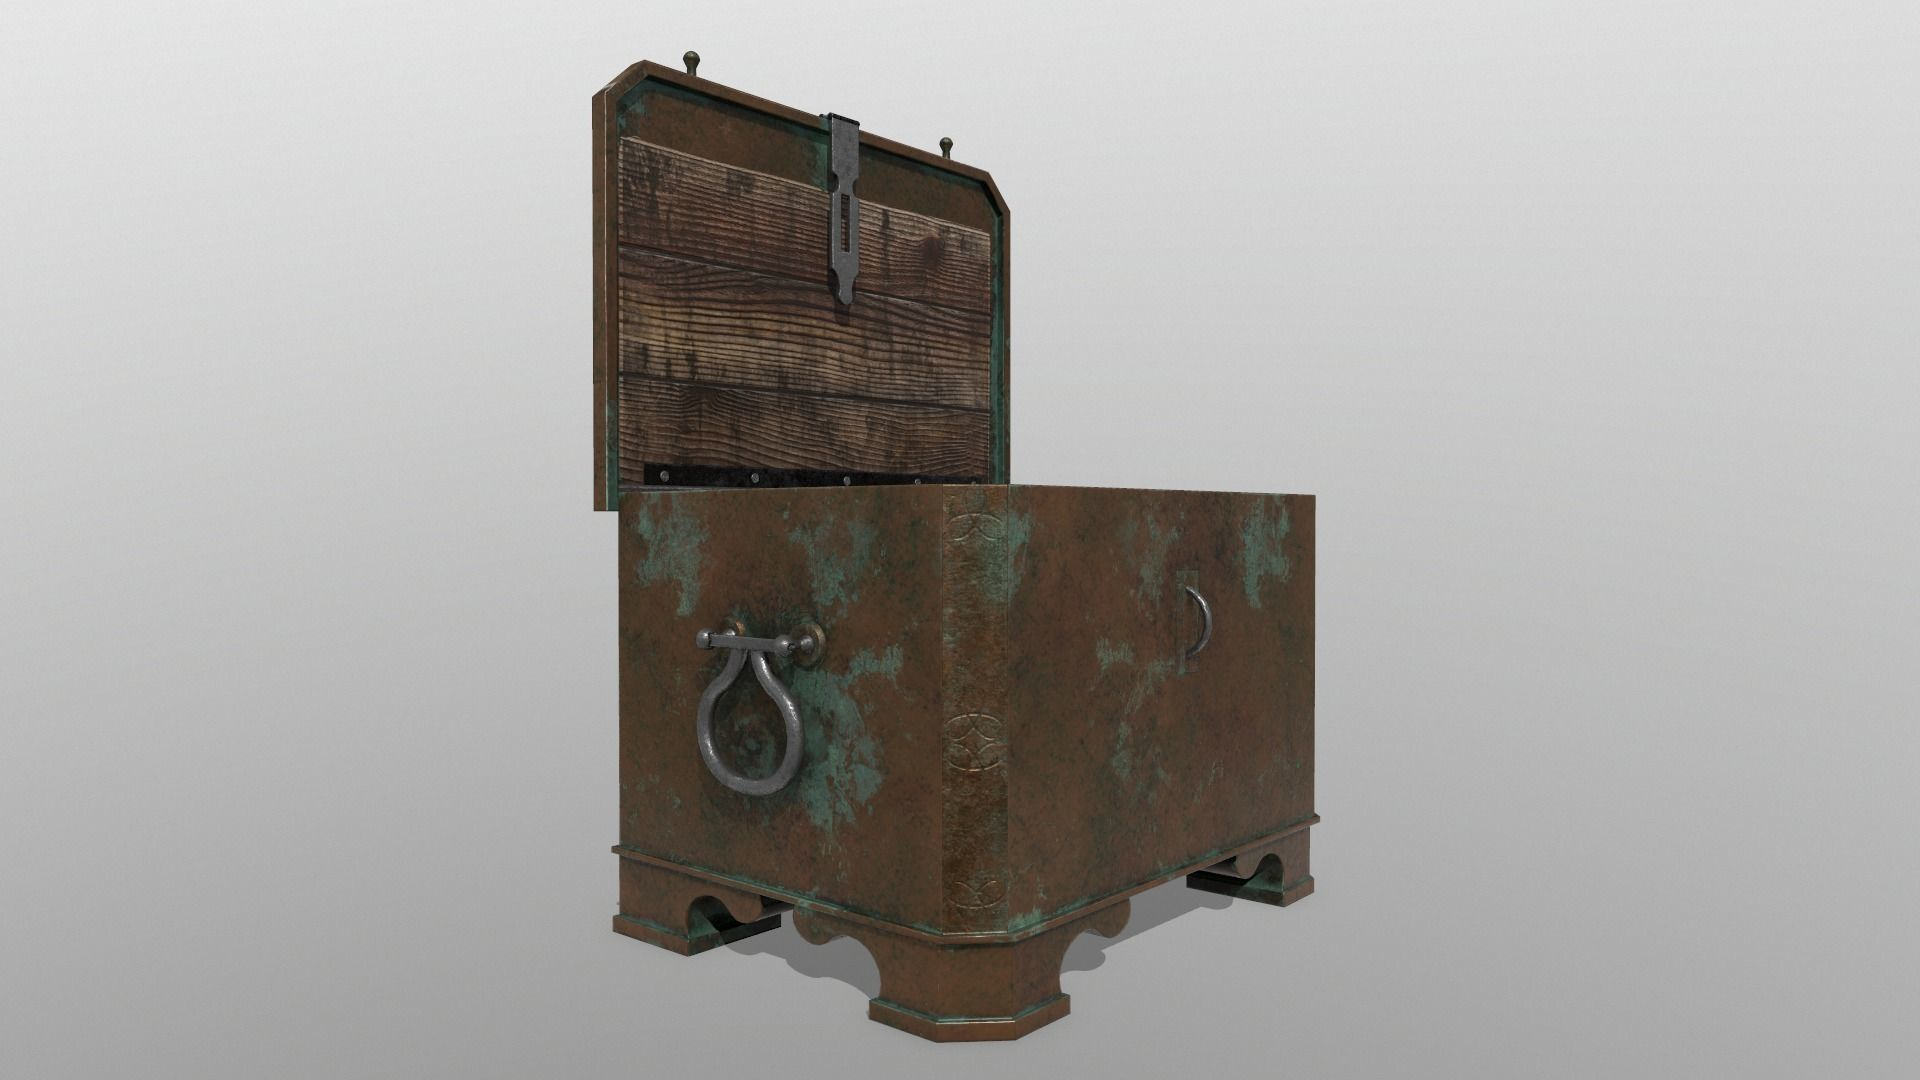 Antique chest safe PBR